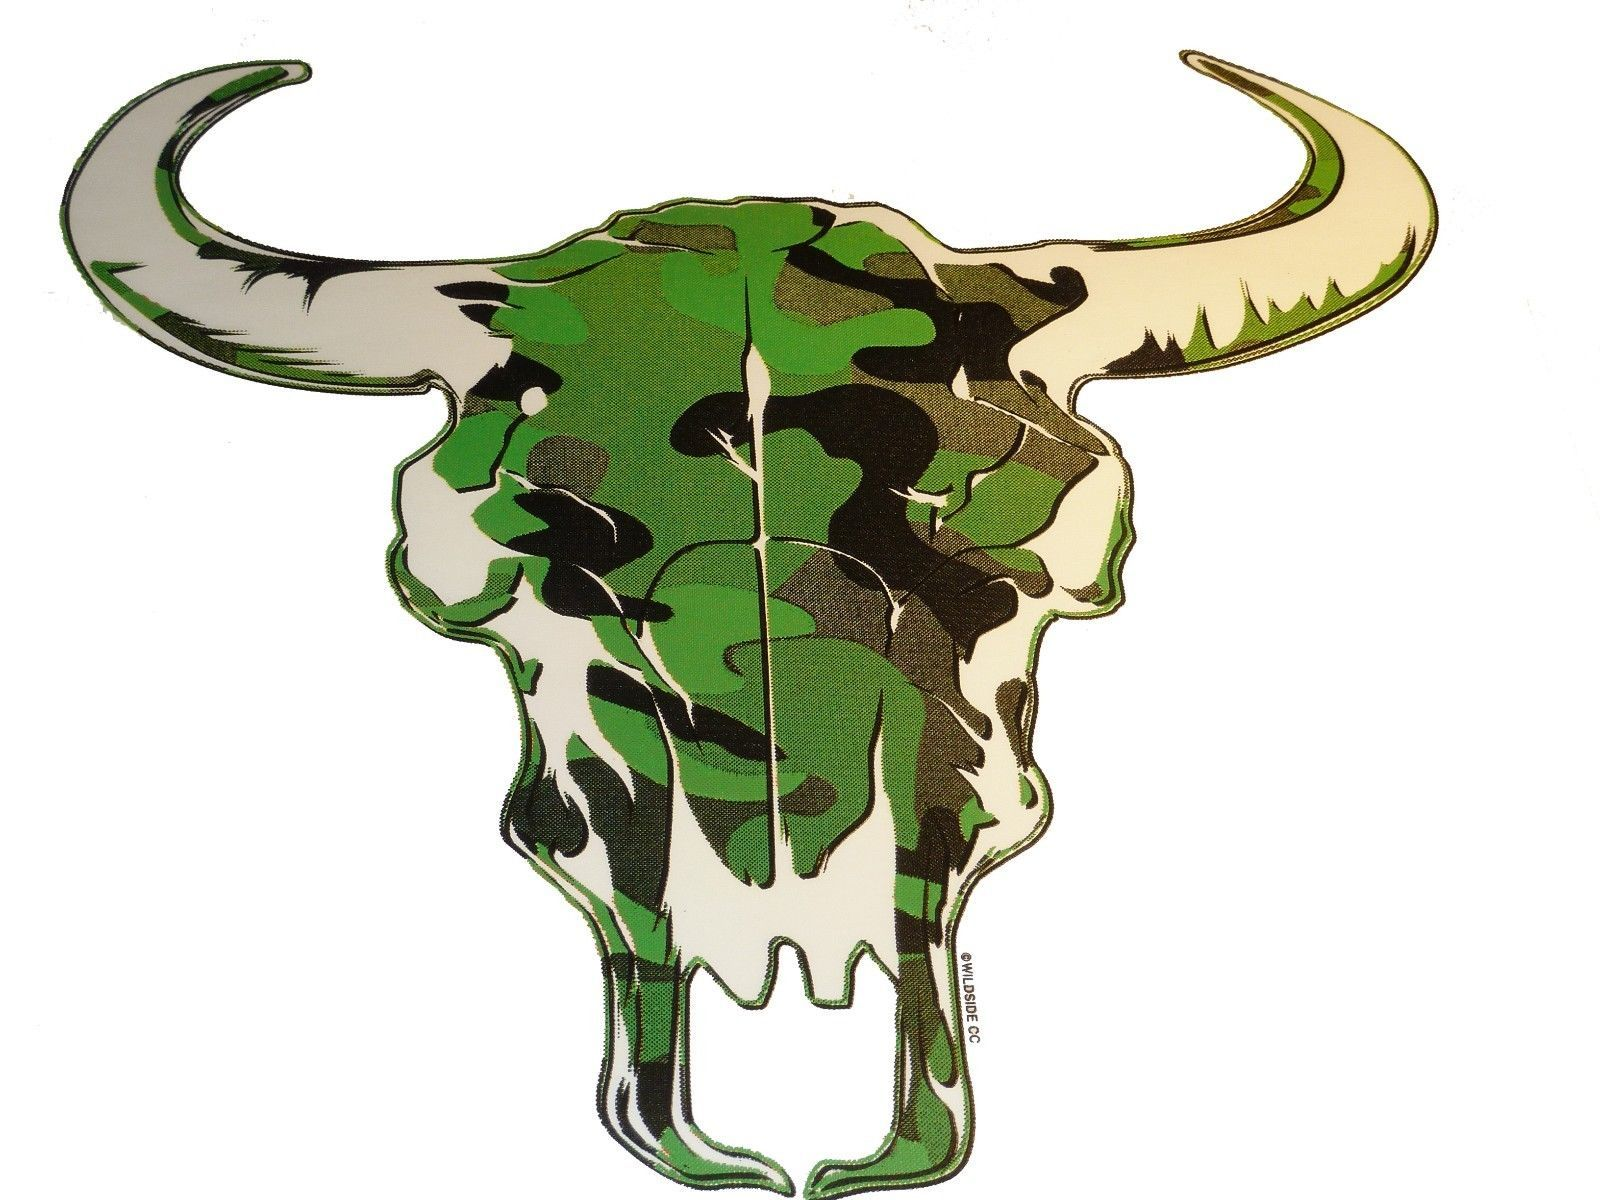 Primary image for Camo Cow Skull T-shirt